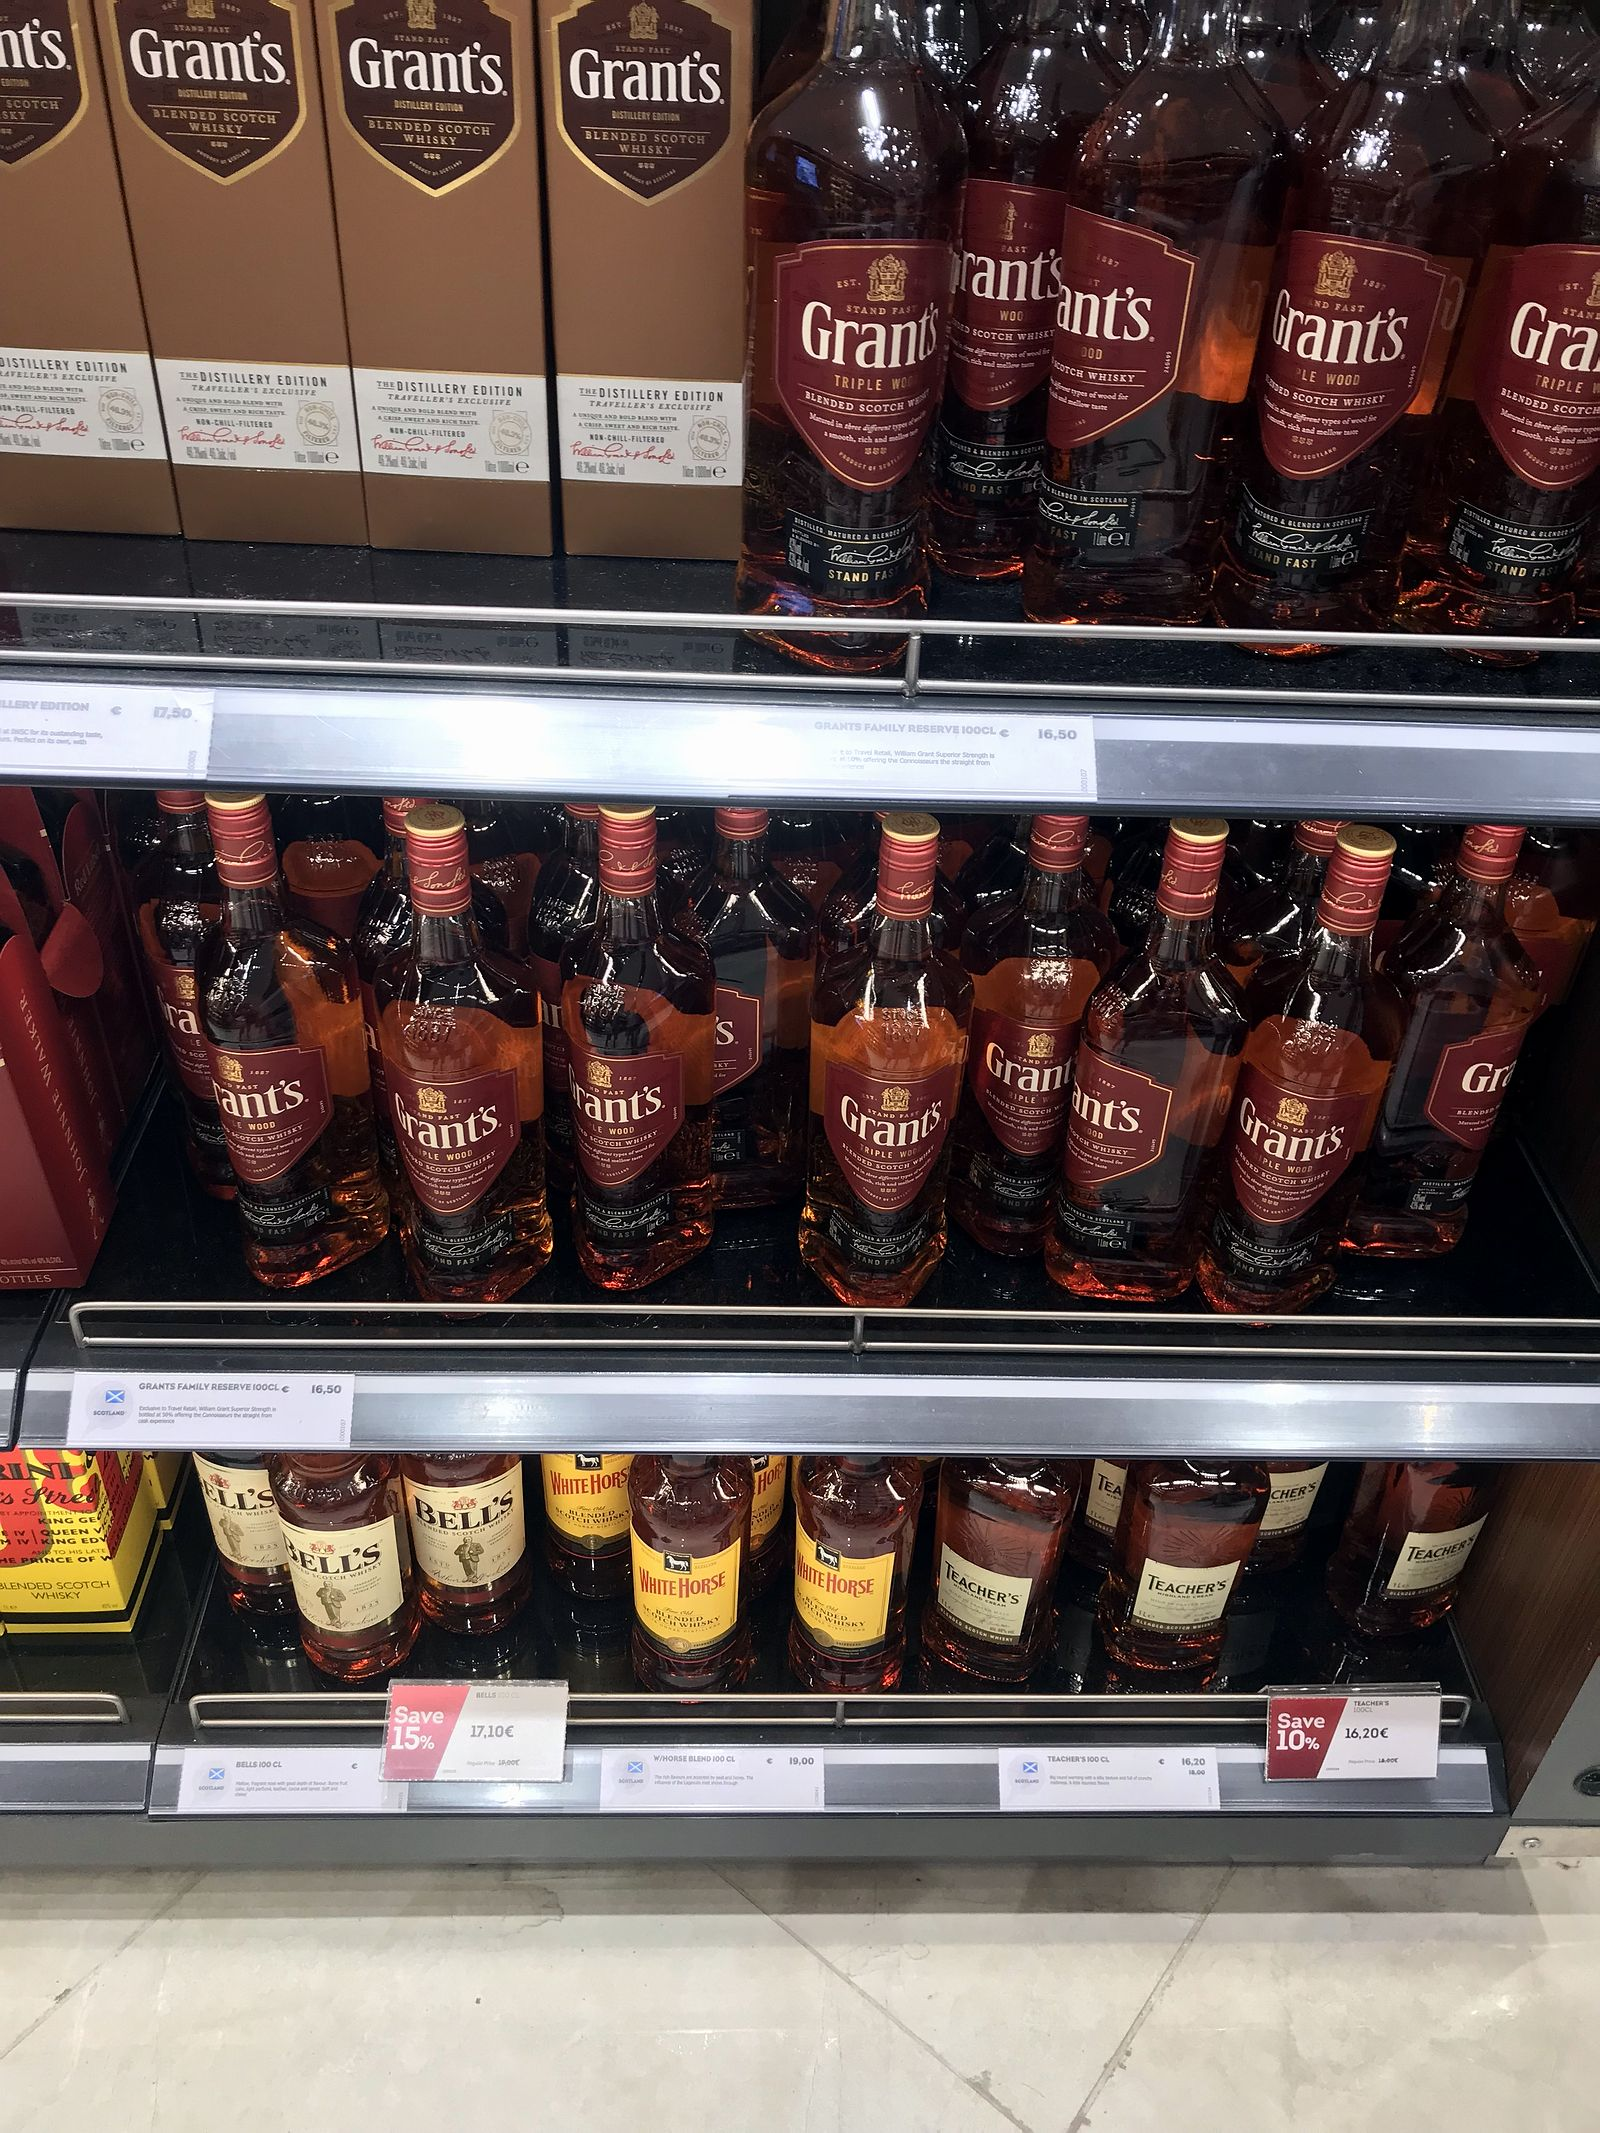 Duty free Antalya, august 2019, whiskey Grant's, White horse, Teachers